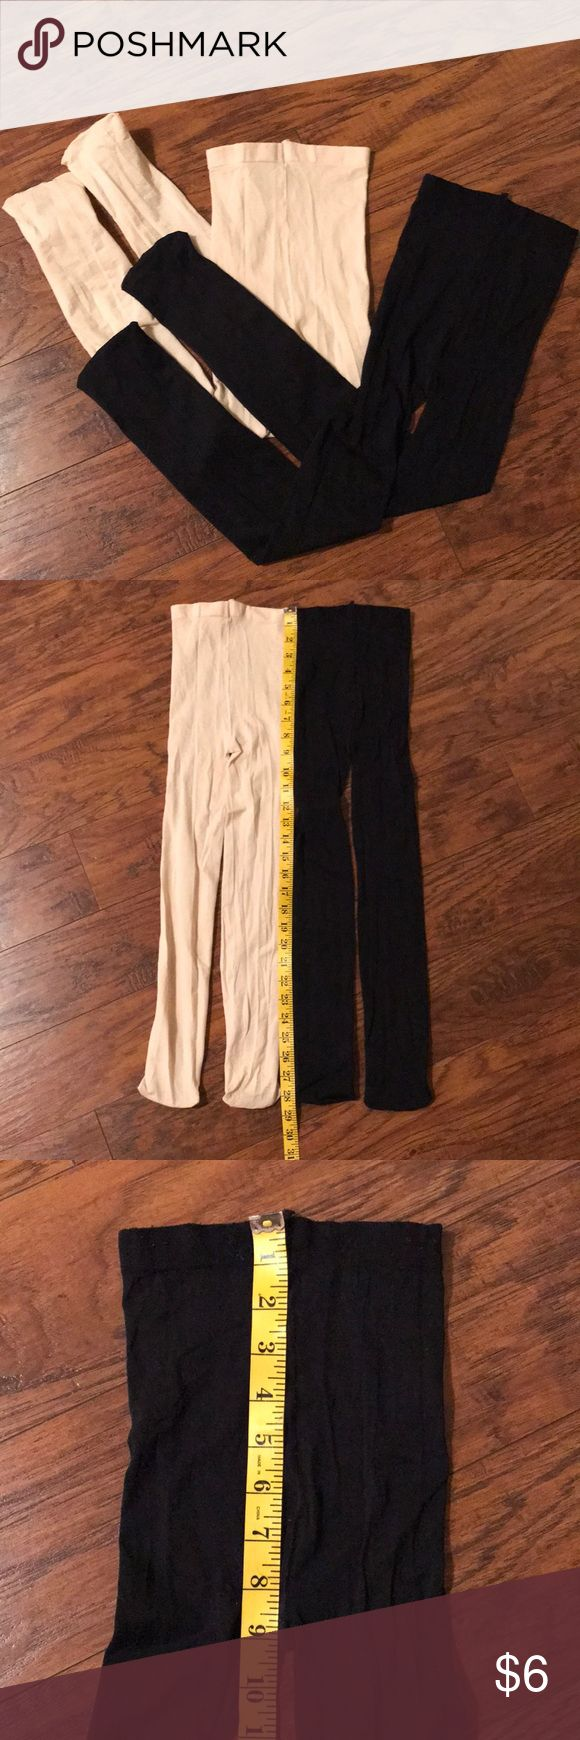 Set of 2 Girls Dance Tights (size unknown) Great condition, Set of 2 Girls Dance Tights, 1 light pink & 1 black, size unknown (see pictures for measurements) Unknown Costumes Dance